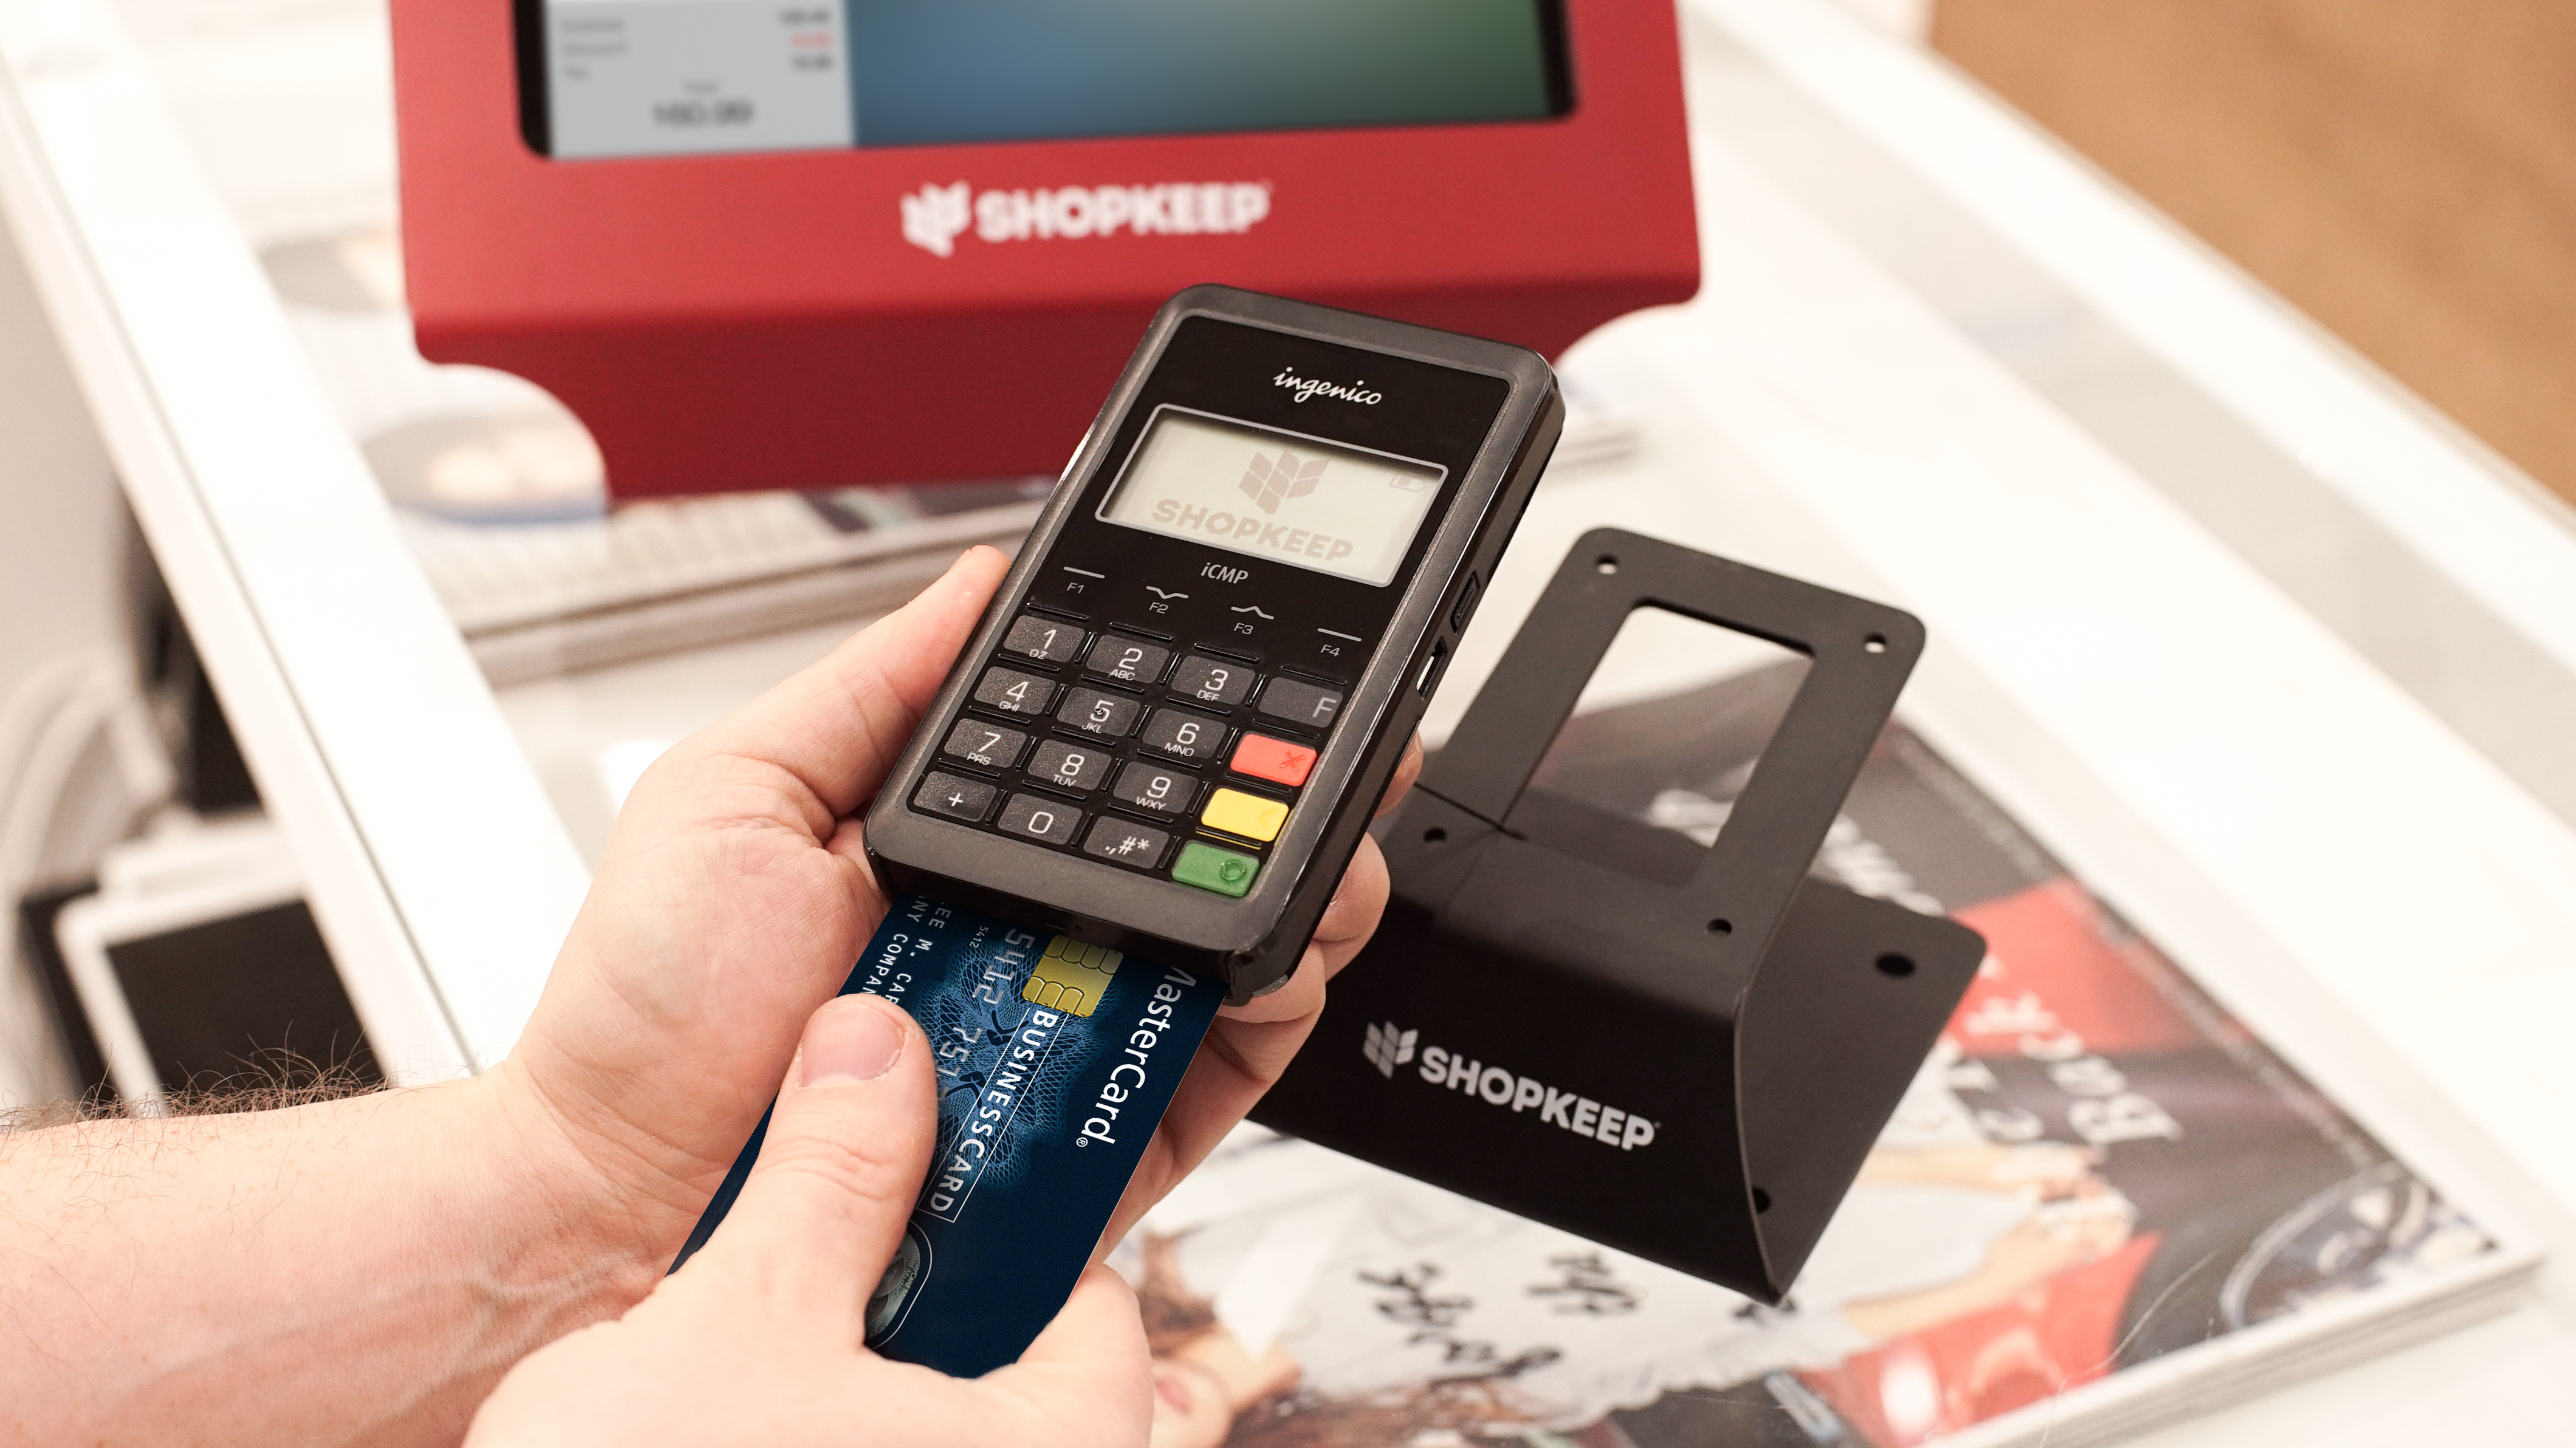 Shopkeep provides purchasing power to mastercard easy savings shopkeep provides purchasing power to mastercard easy savings members business wire reheart Choice Image